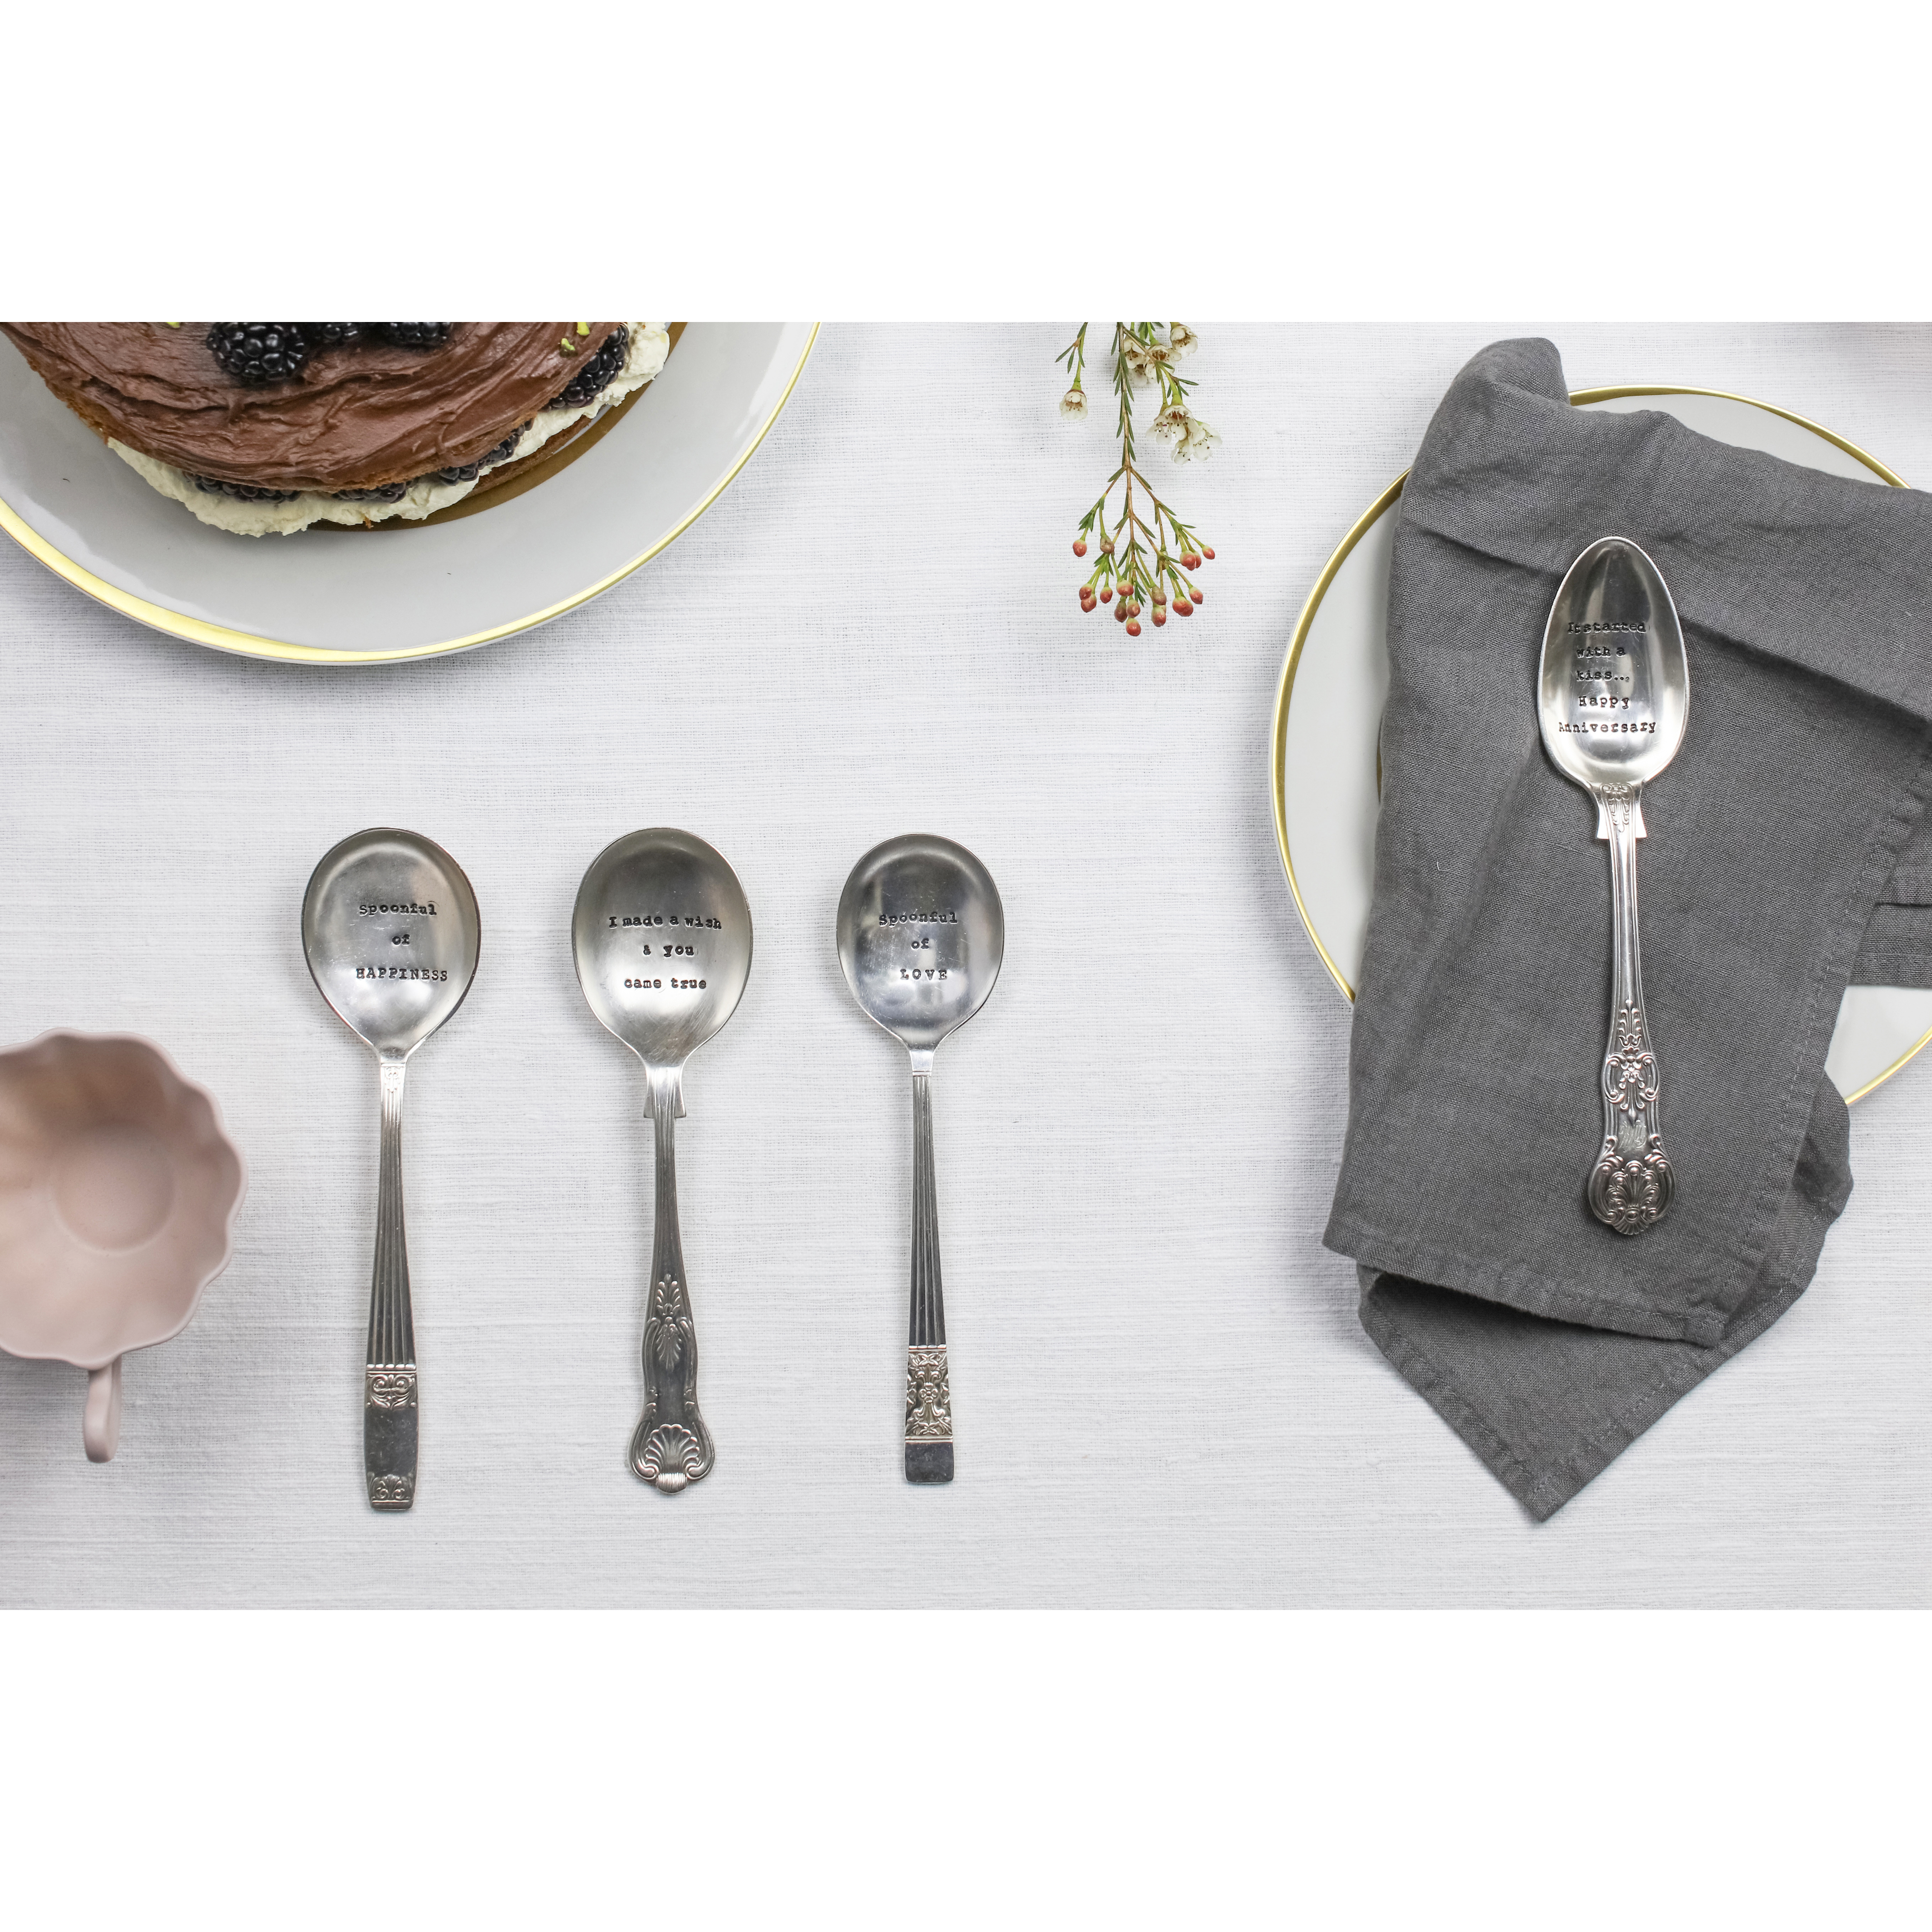 Dessert Spoon – 'A Mothers Treasure'